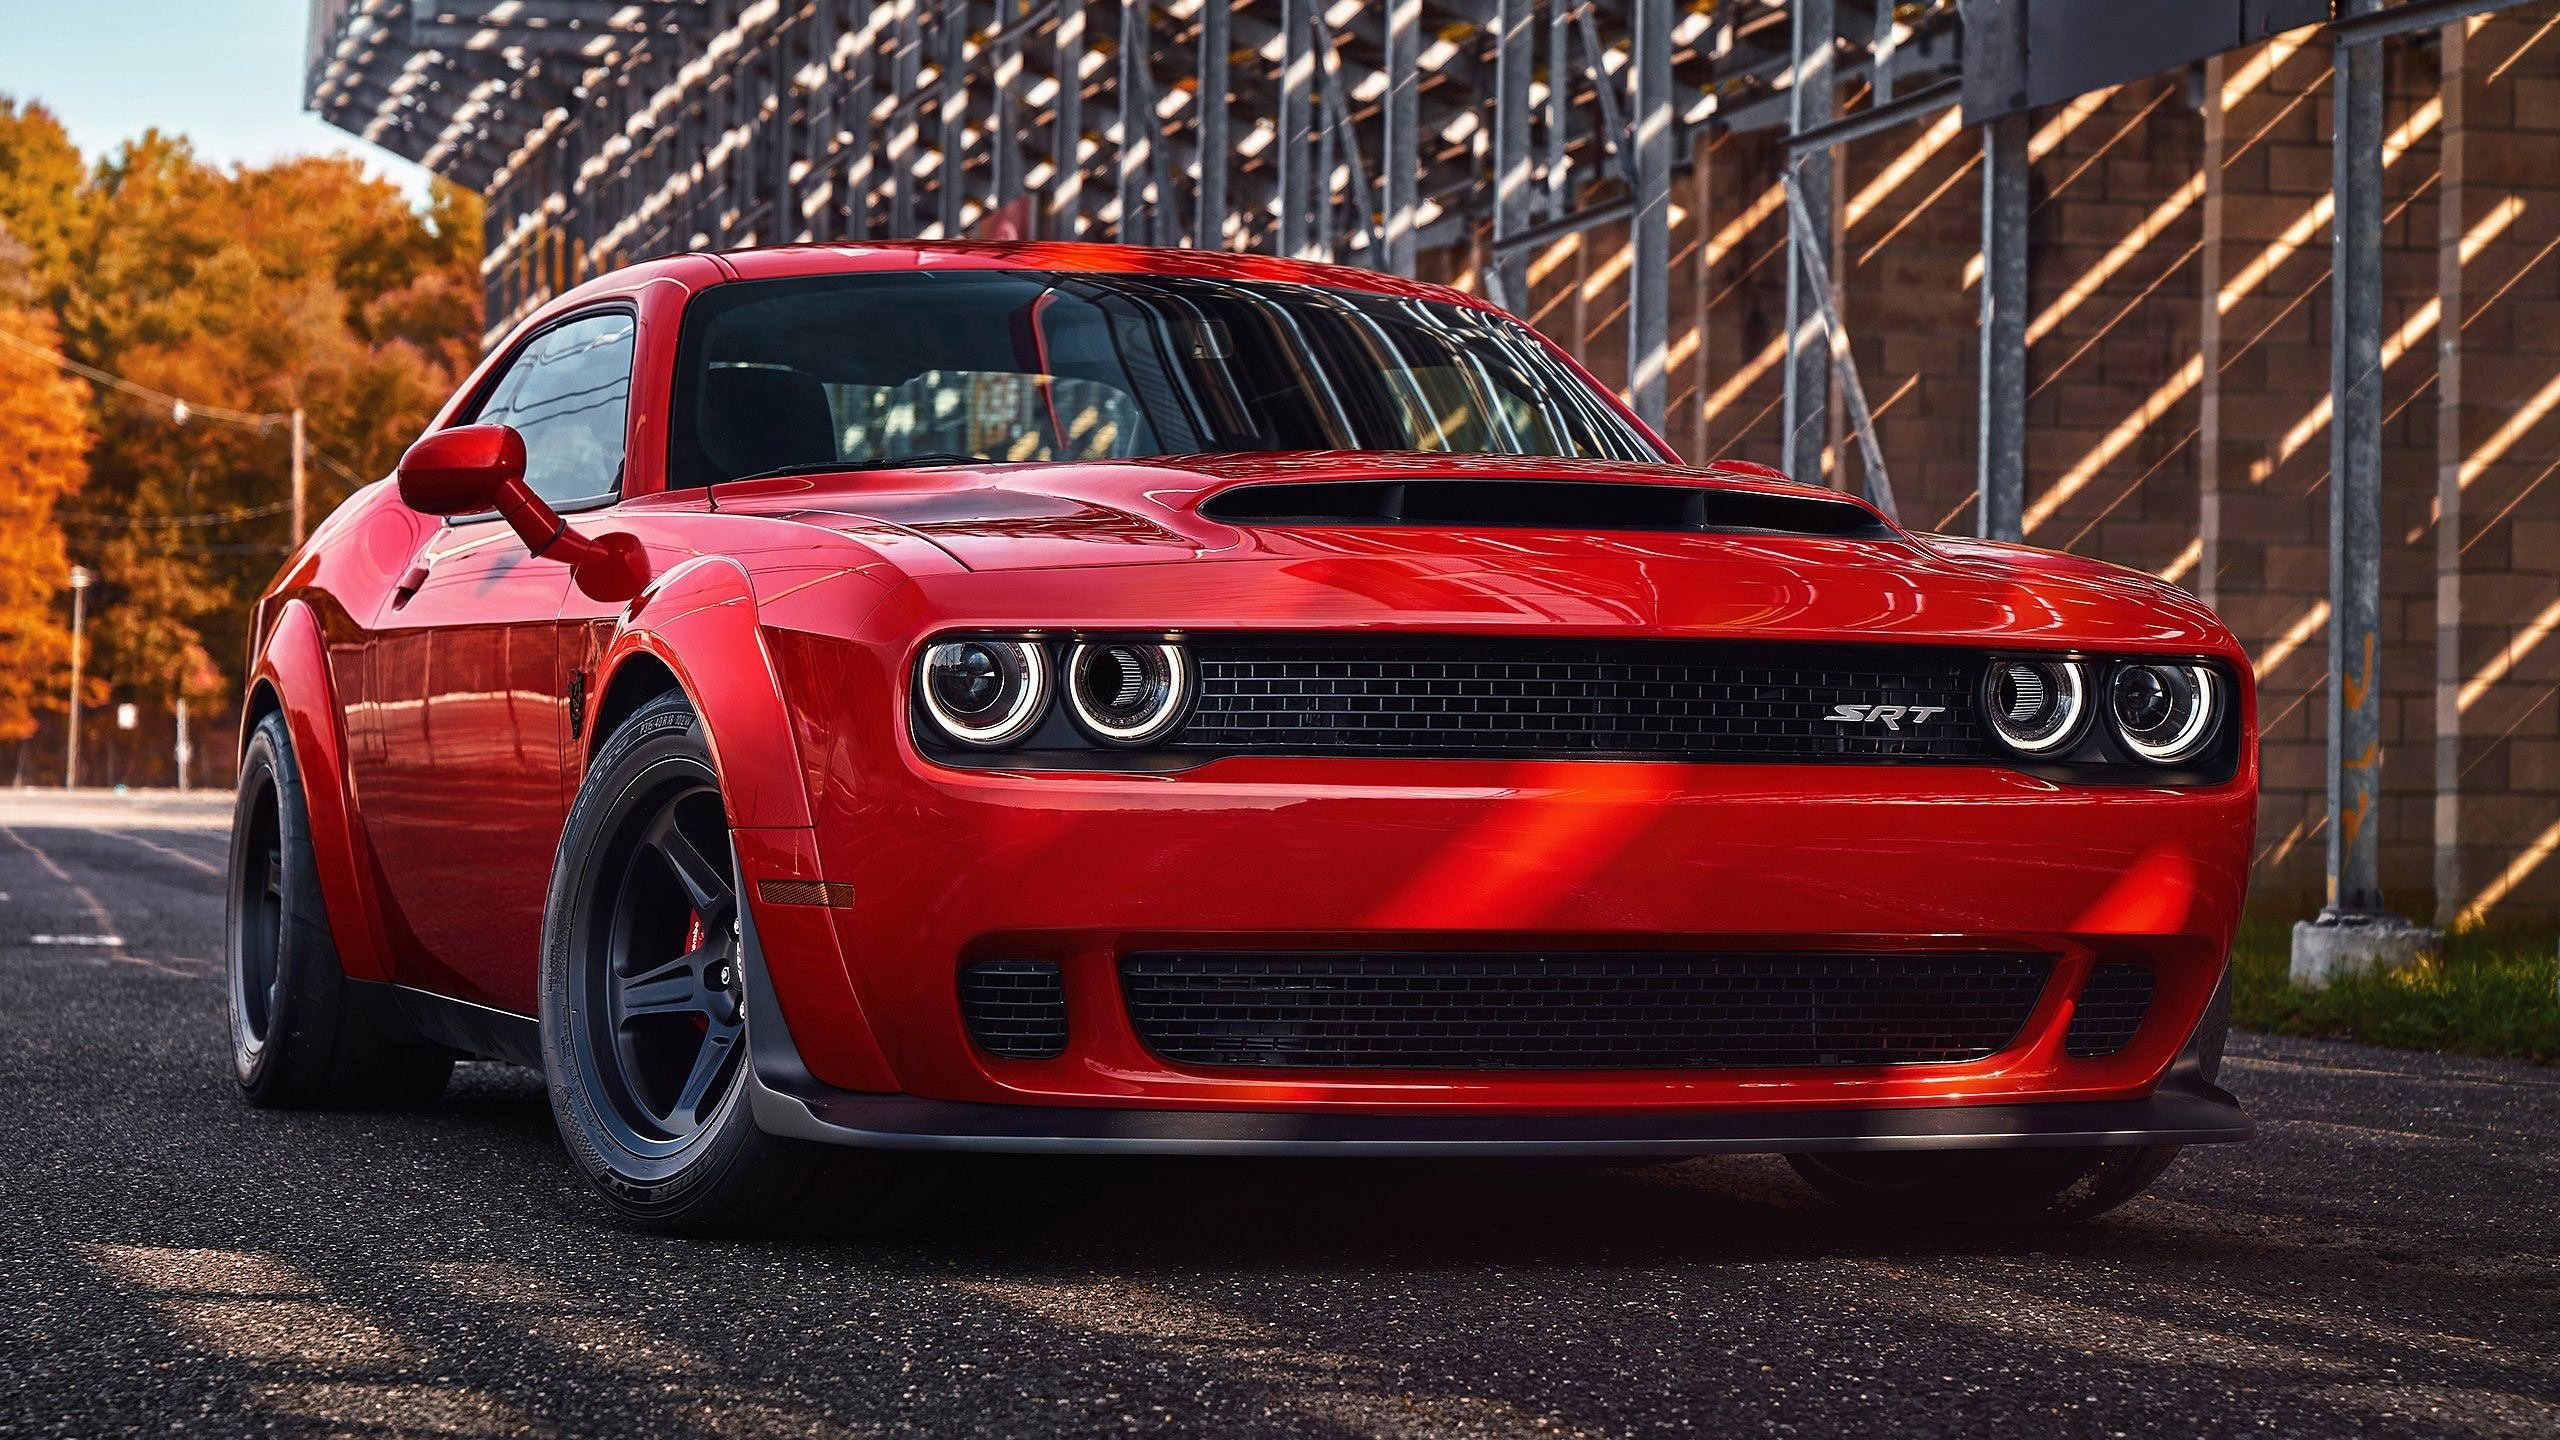 Challenger Hd Wallpaper Dodge Wallpapers 4k For Your Phone And Desktop Screen